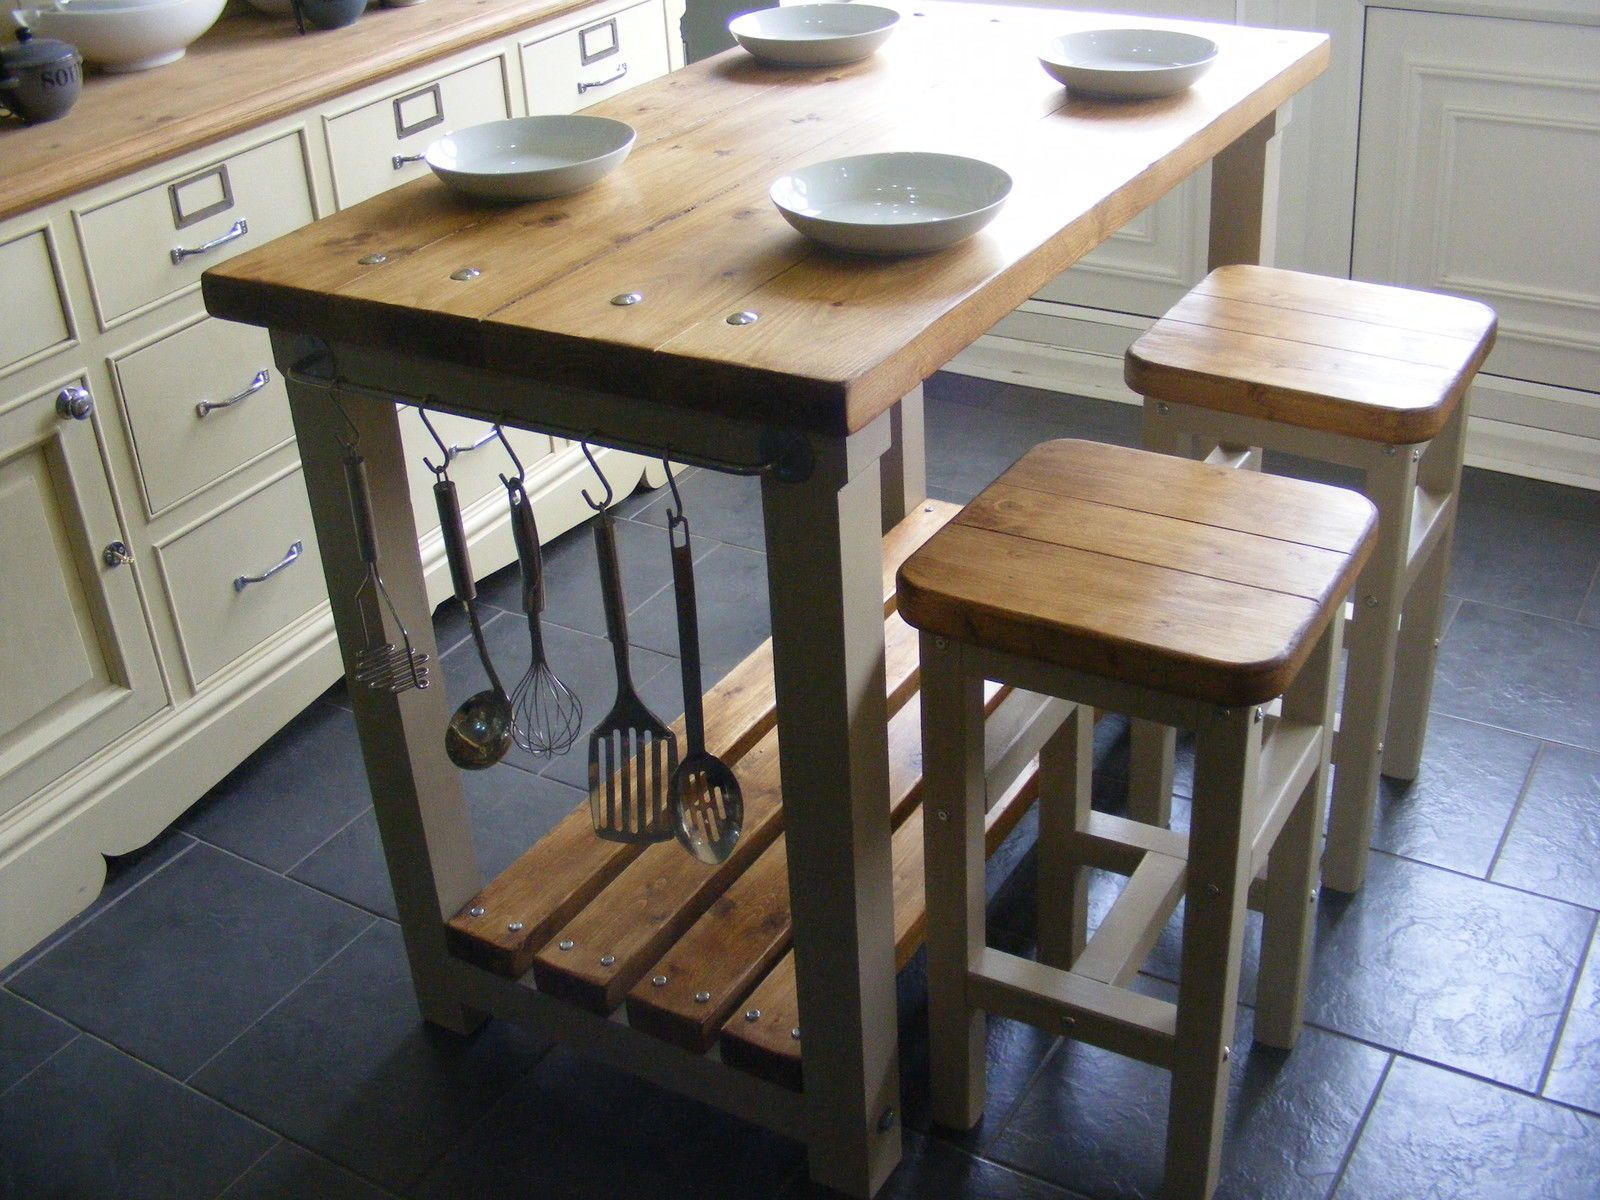 Rustic Stools Kitchens Rustic Kitchen Island Breakfast Bar Work Bench Butchers